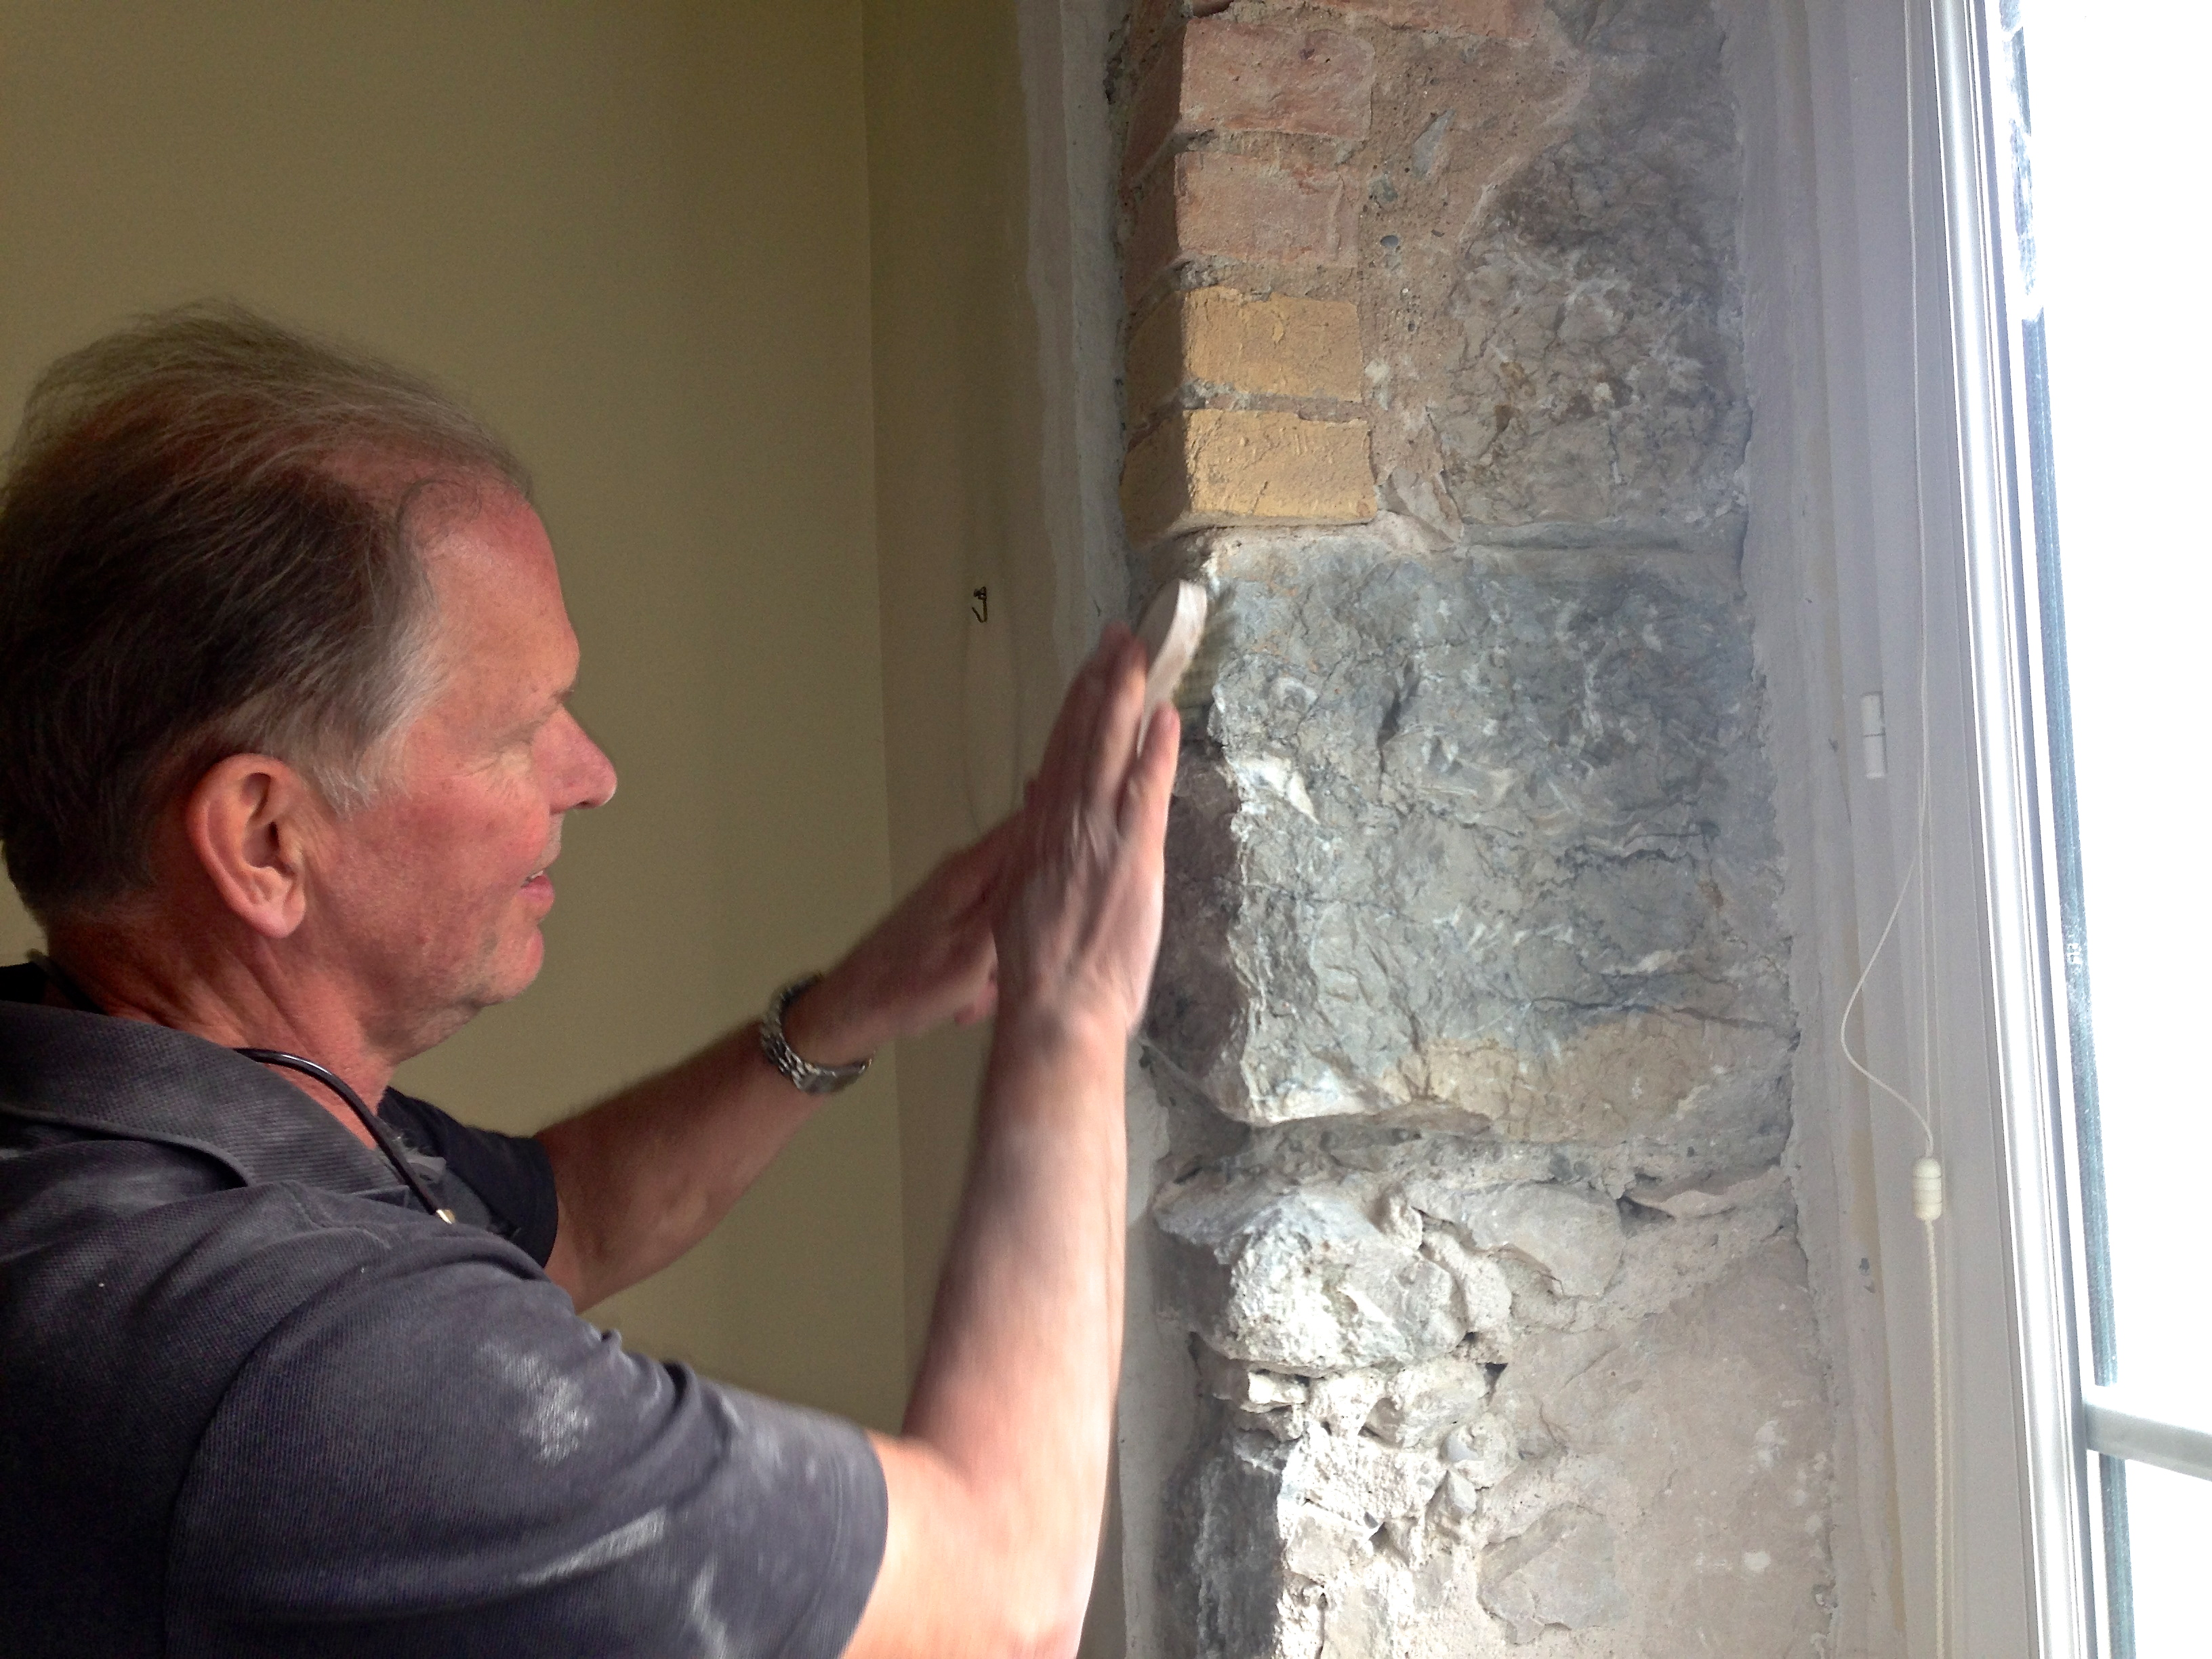 Cleaning up rocks and bricks around the windows